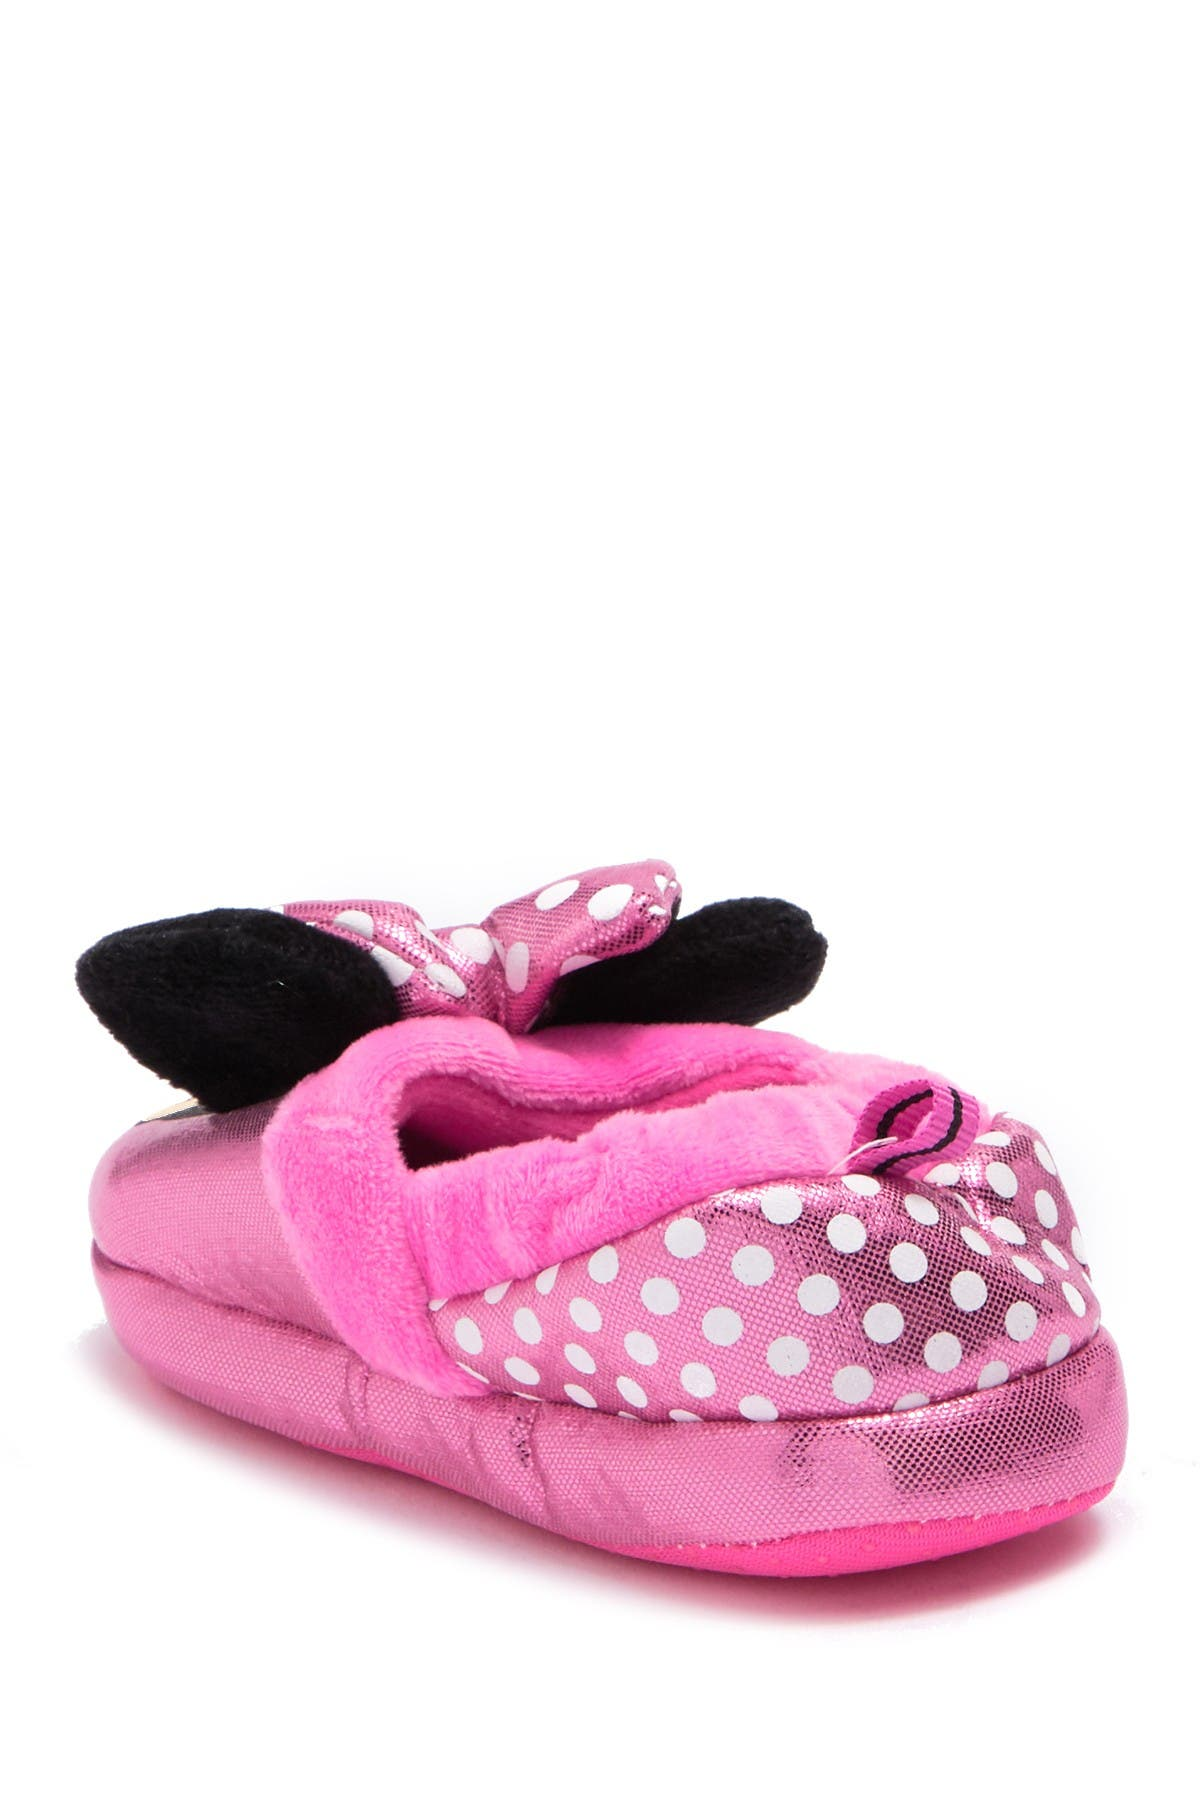 Image of Josmo Minnie Mouse Slipper